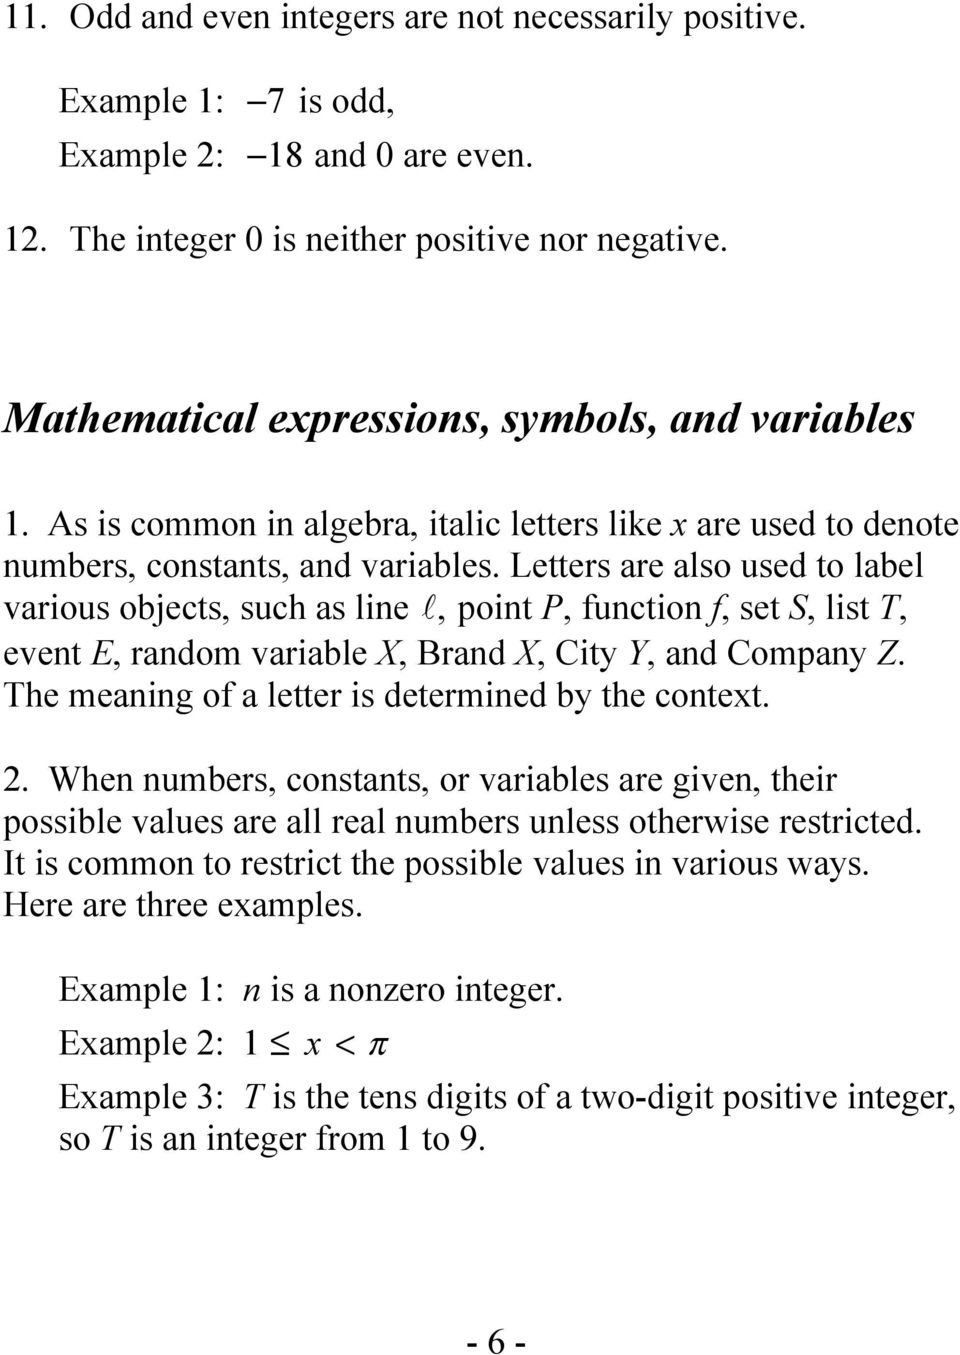 Letters are also used to label various objects, such as line, point P, function f, set S, list T, event E, random variable X, Brand X, City Y, and Company Z.